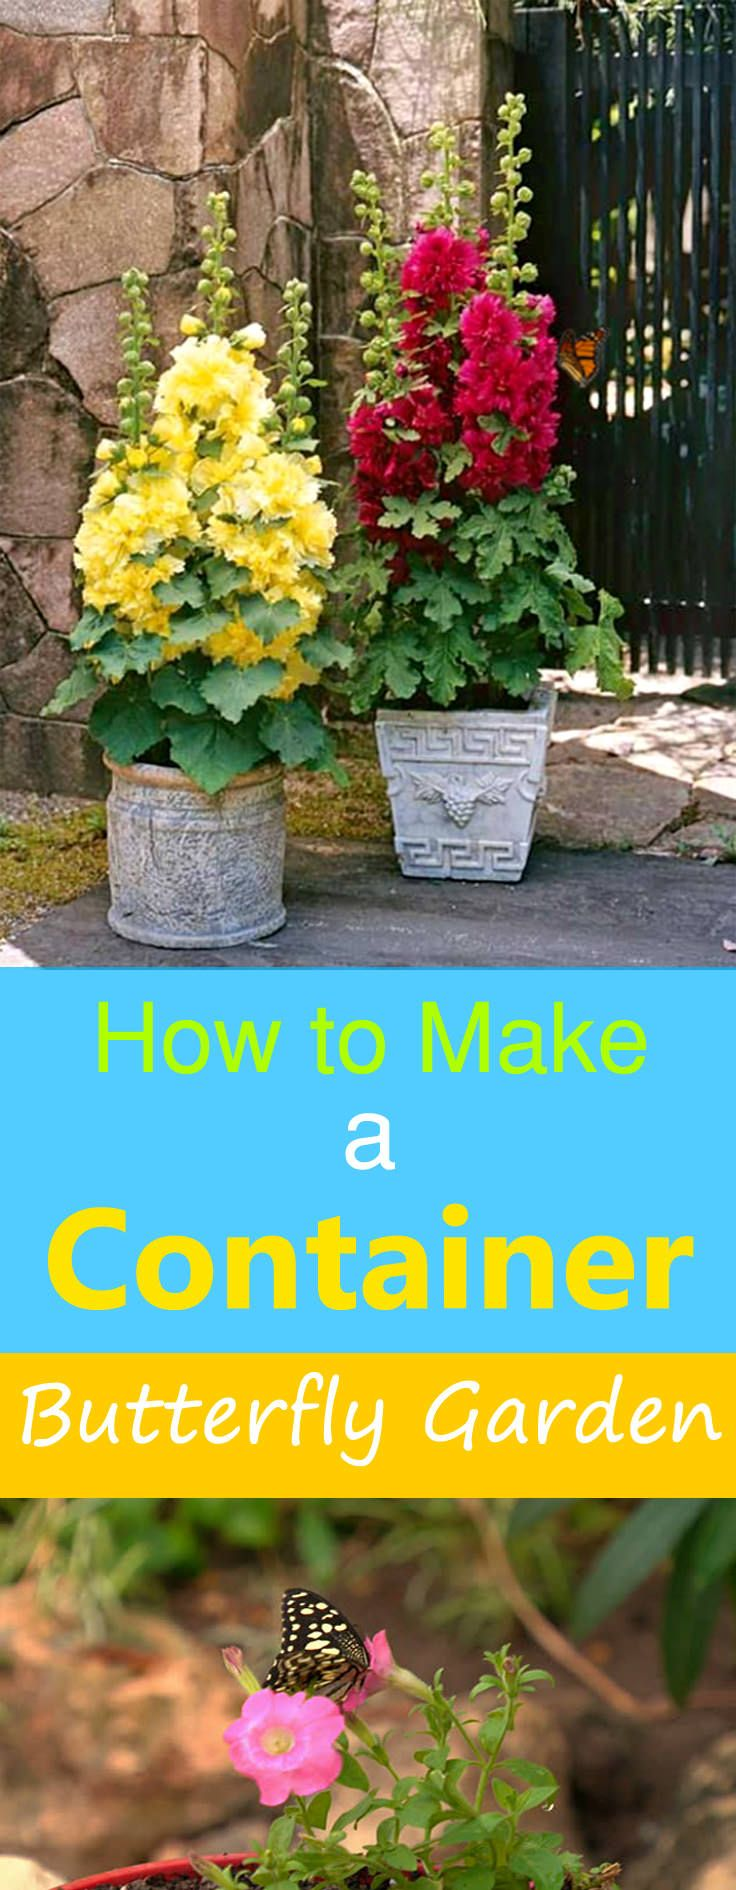 How To Make A Container Butterfly Garden